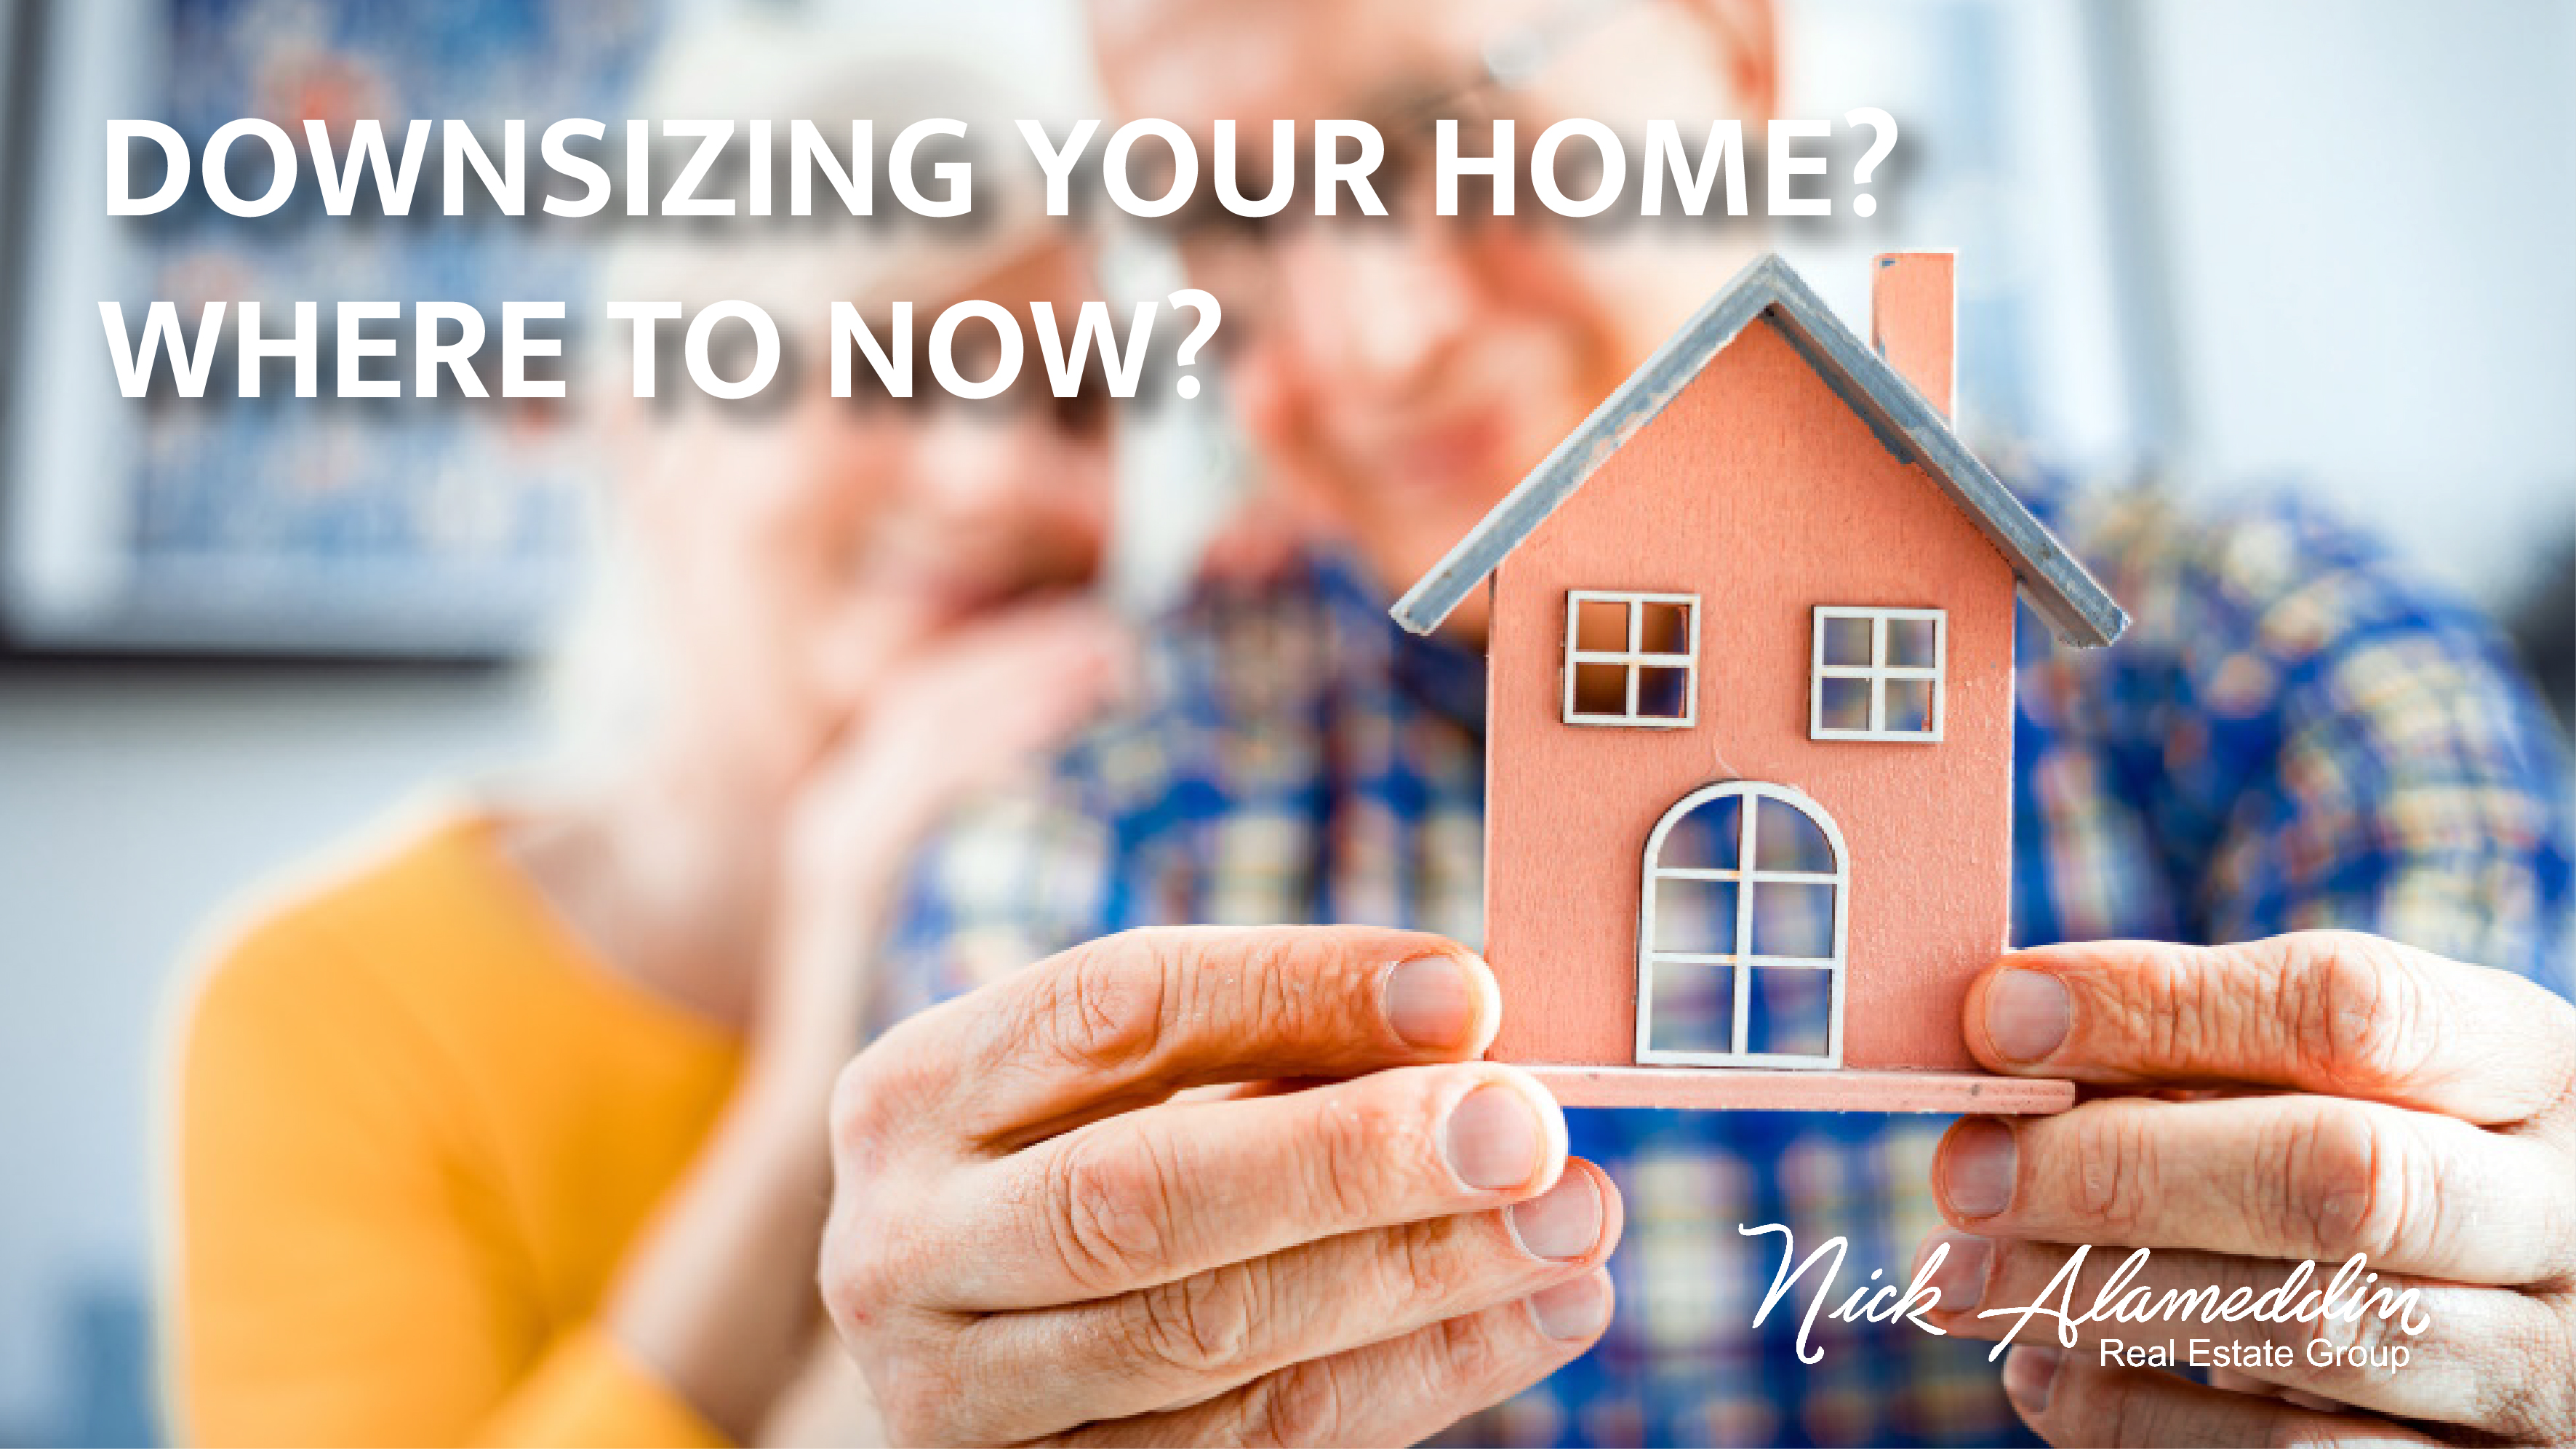 Downsizing Your Home? Where To Now?